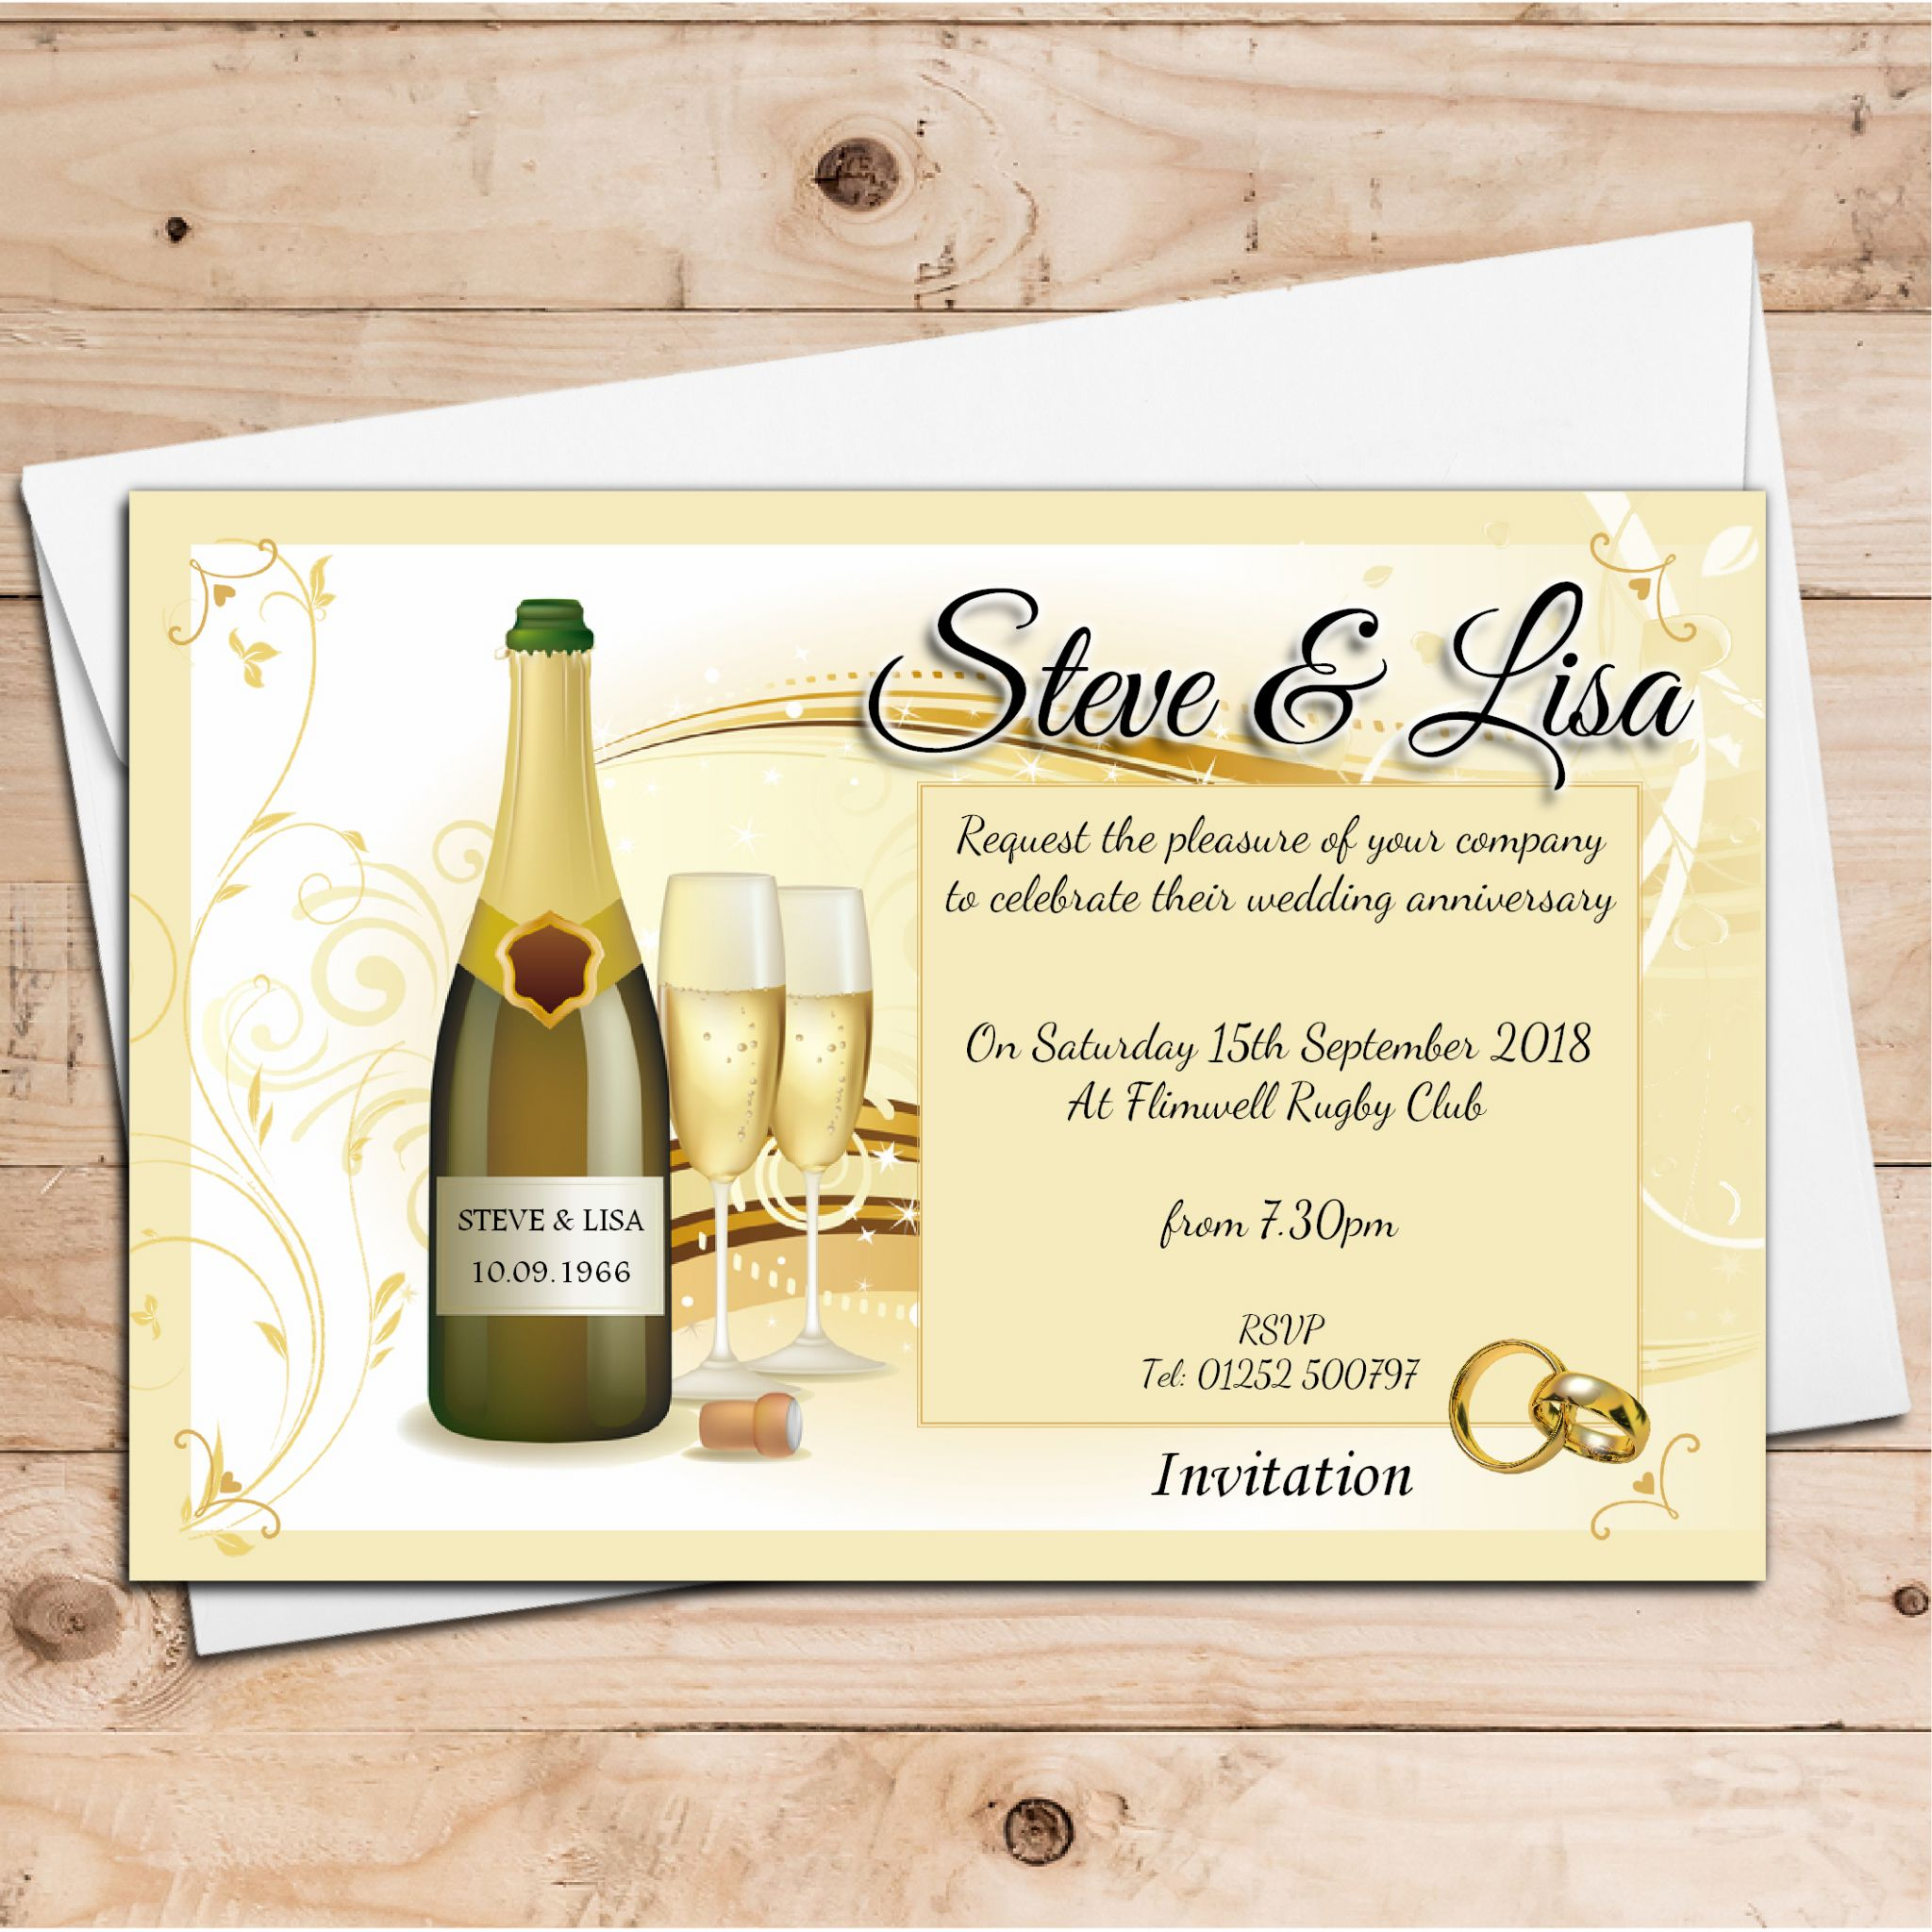 10 Year Wedding Anniversary Invitations: 10 Personalised Wedding Anniversary Invitations N7